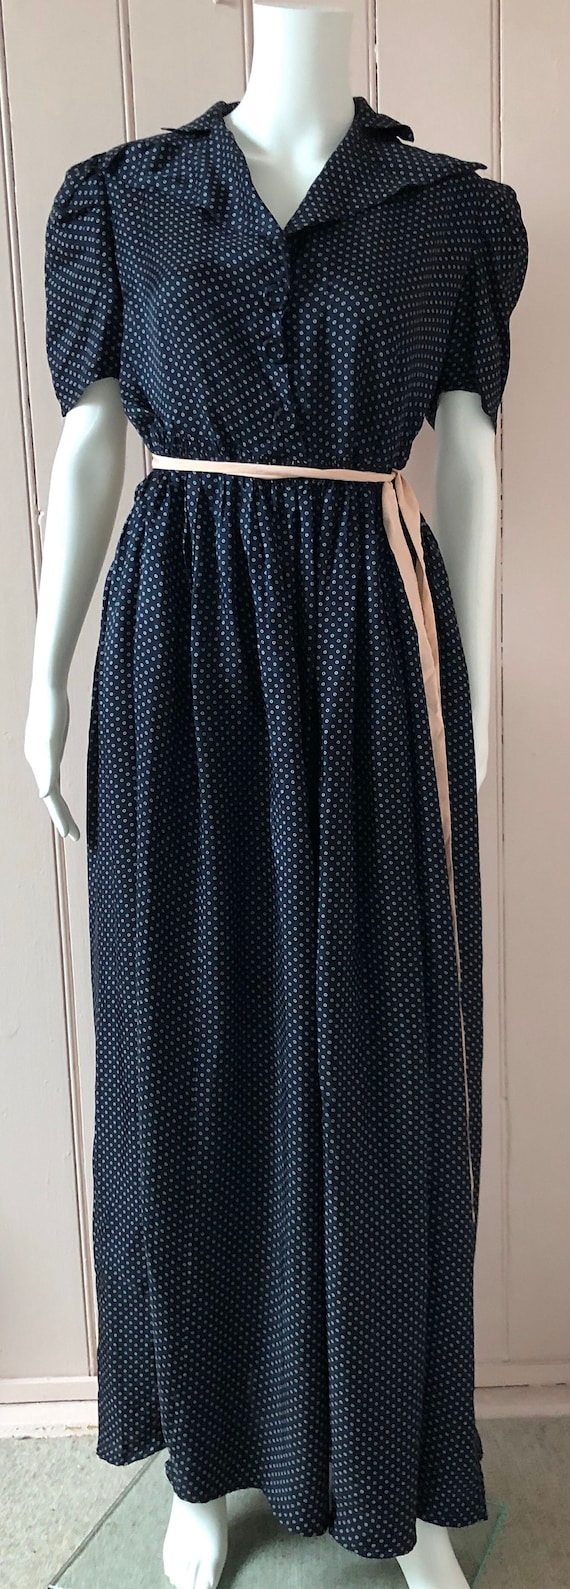 Lovely 1940's Rayon Dress - image 8